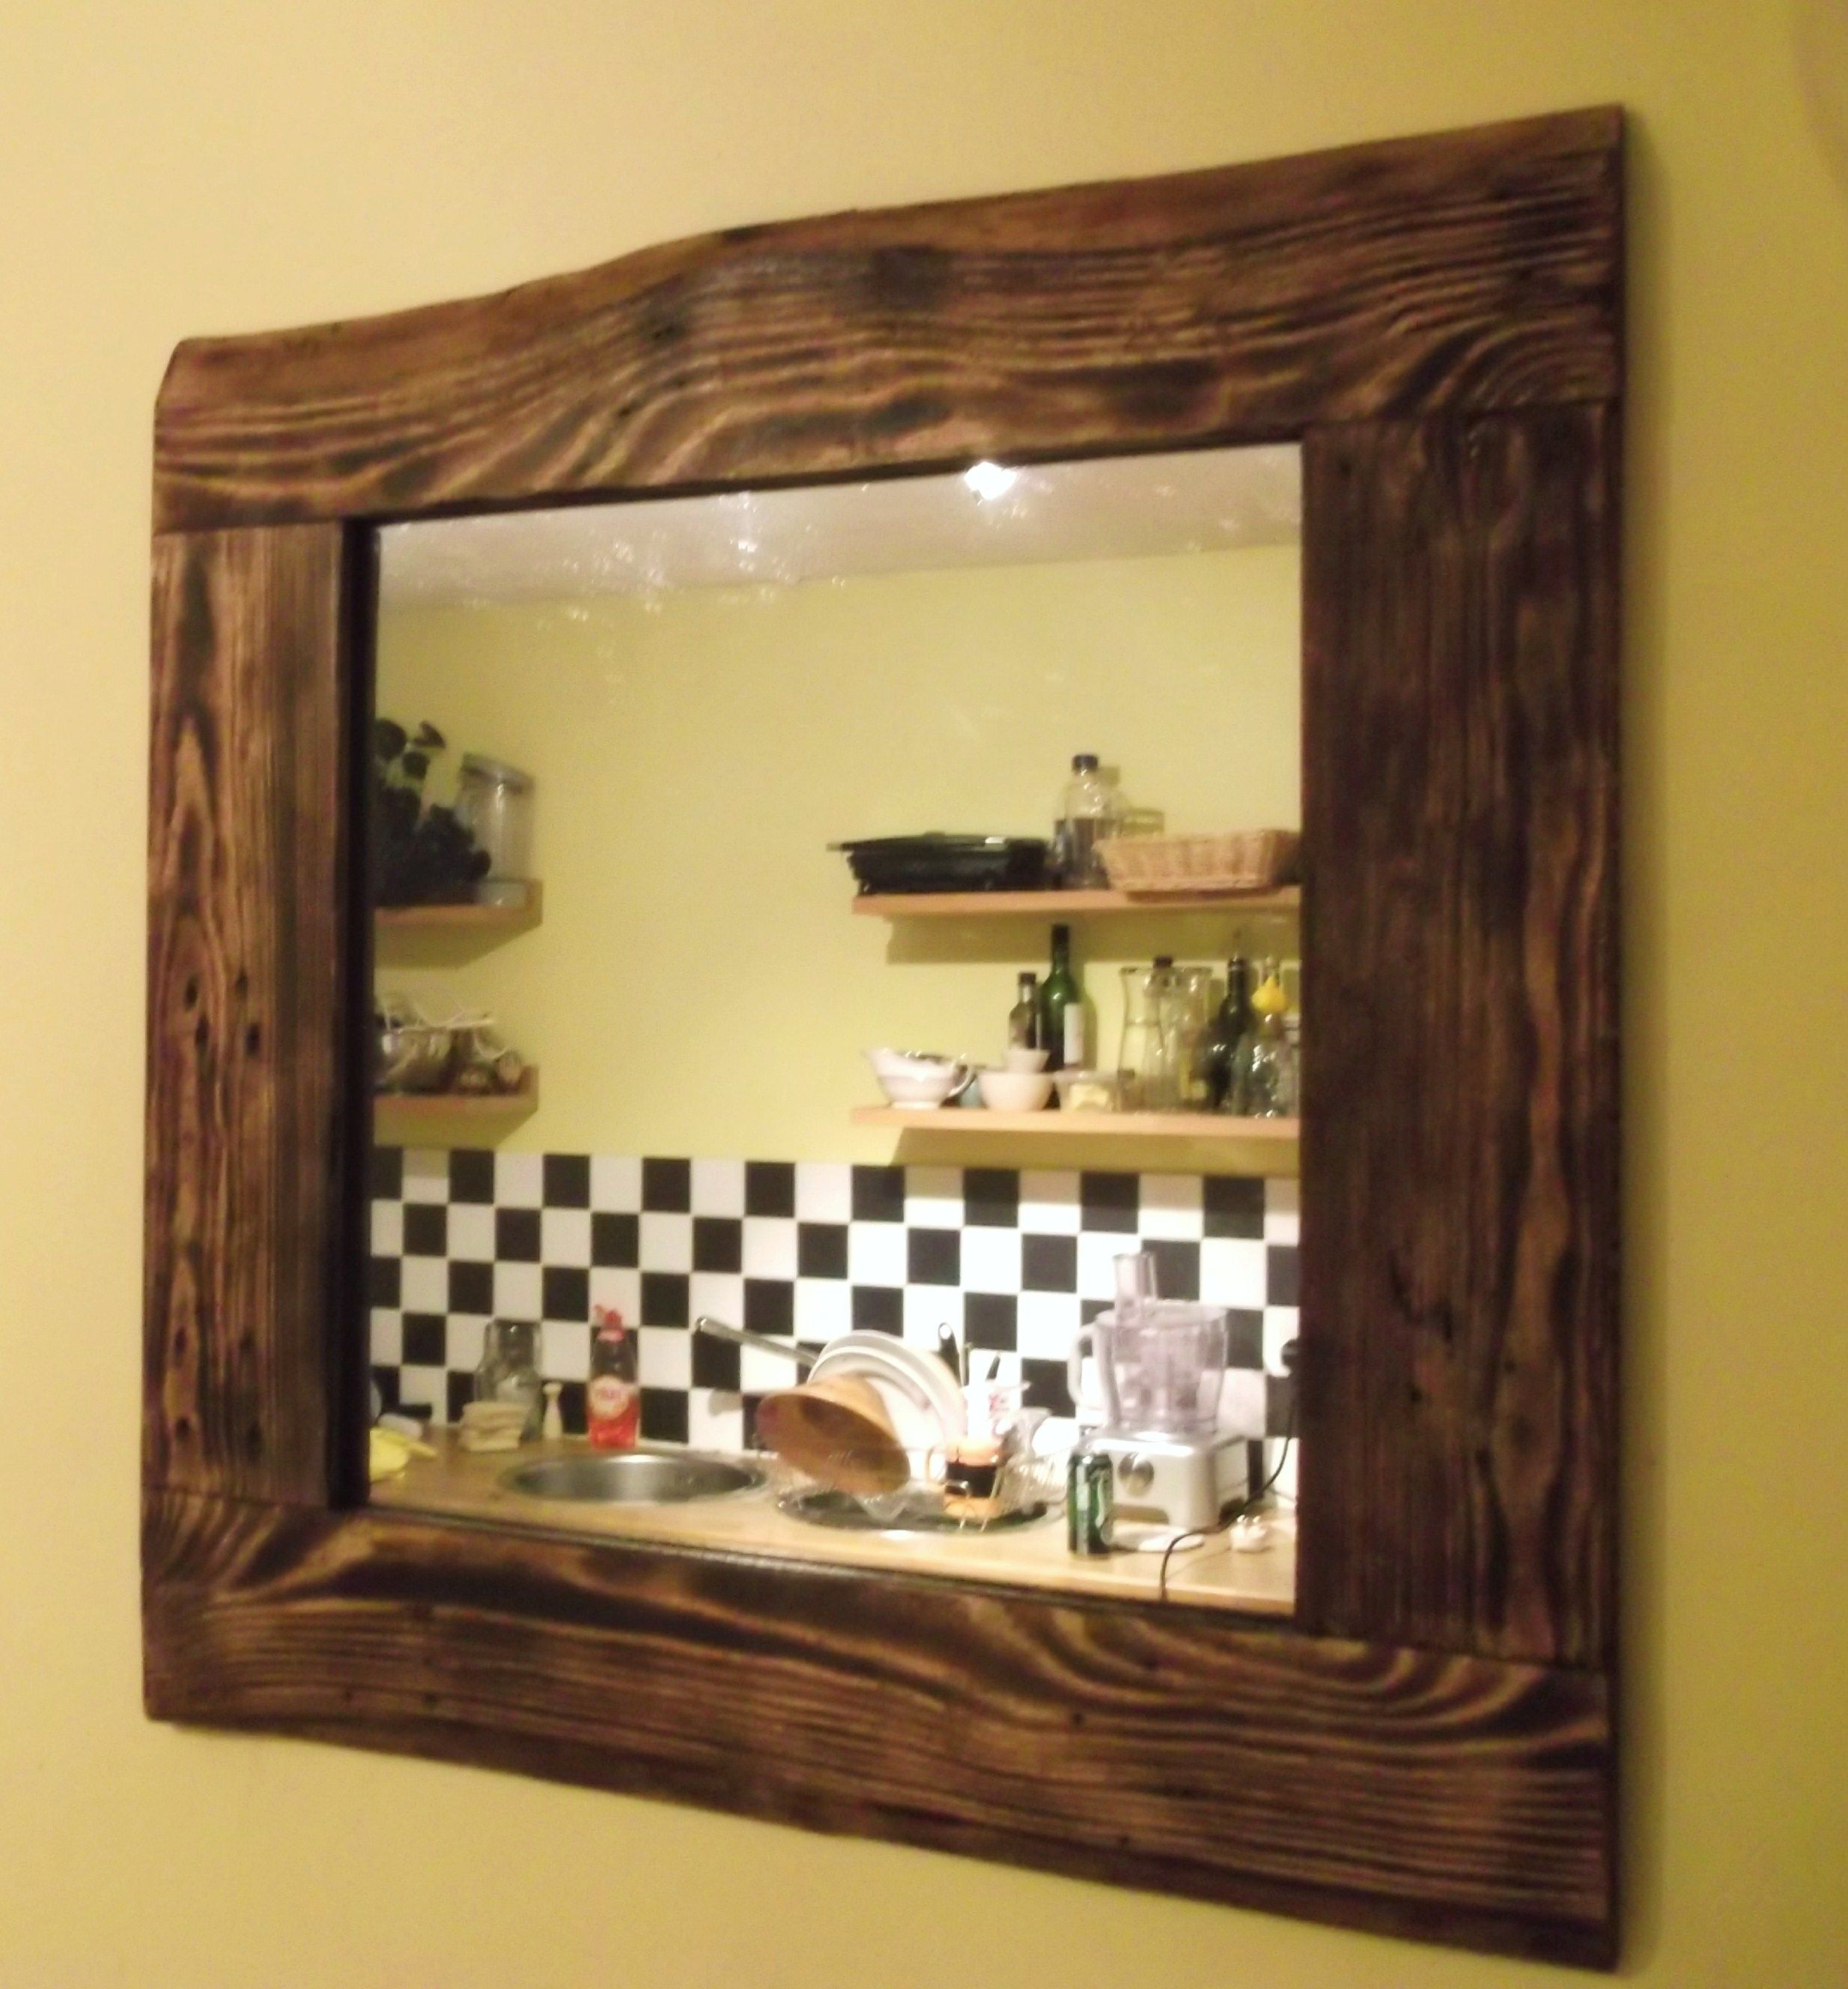 Mirror in recycled pallet wood frame syuklisting